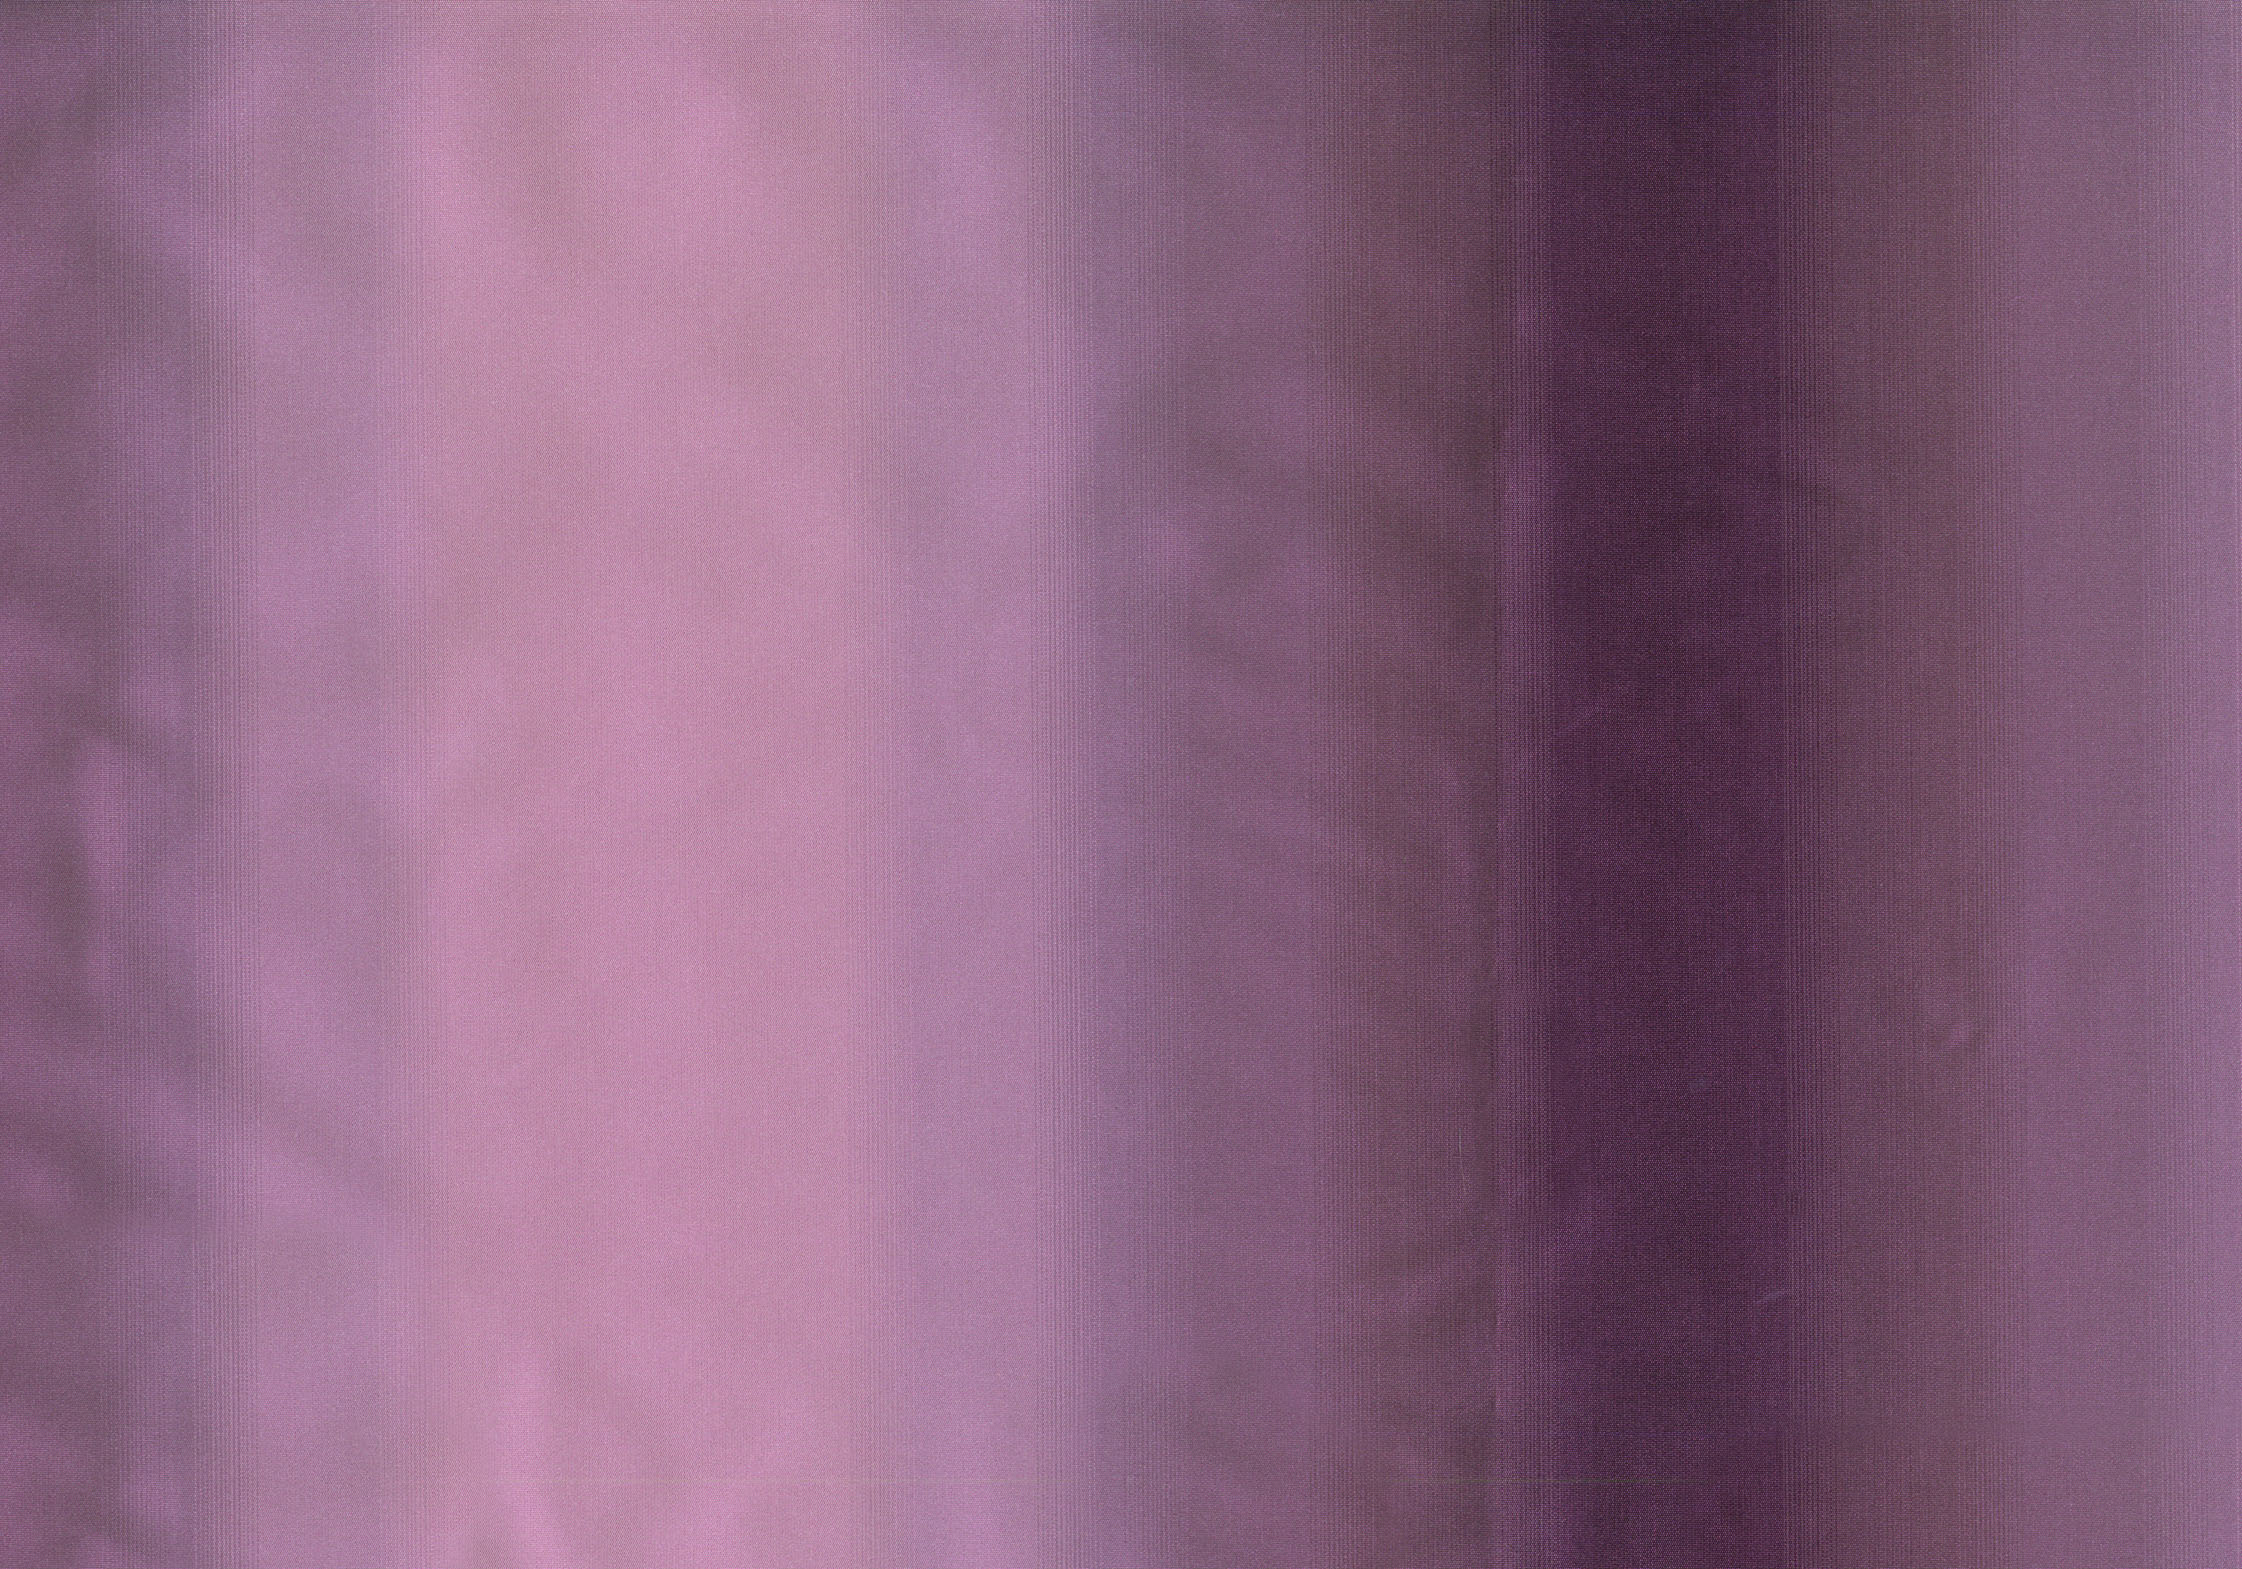 Home Decor 8\u0022x8\u0022 Fabric Swatch-IMAN Sinai Sunrise Amethyst